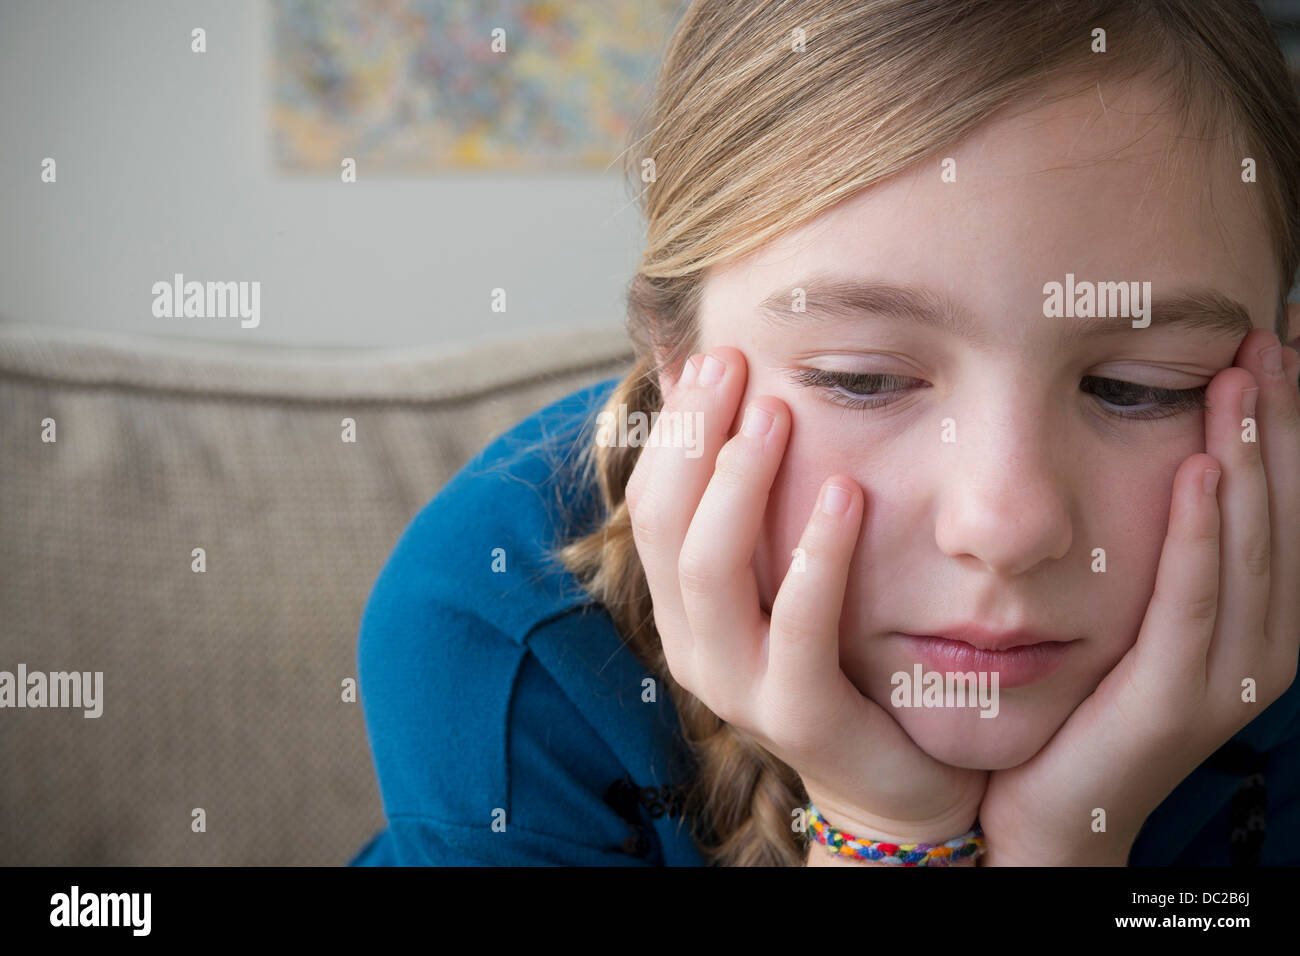 Girl with hands on face looking down - Stock Image